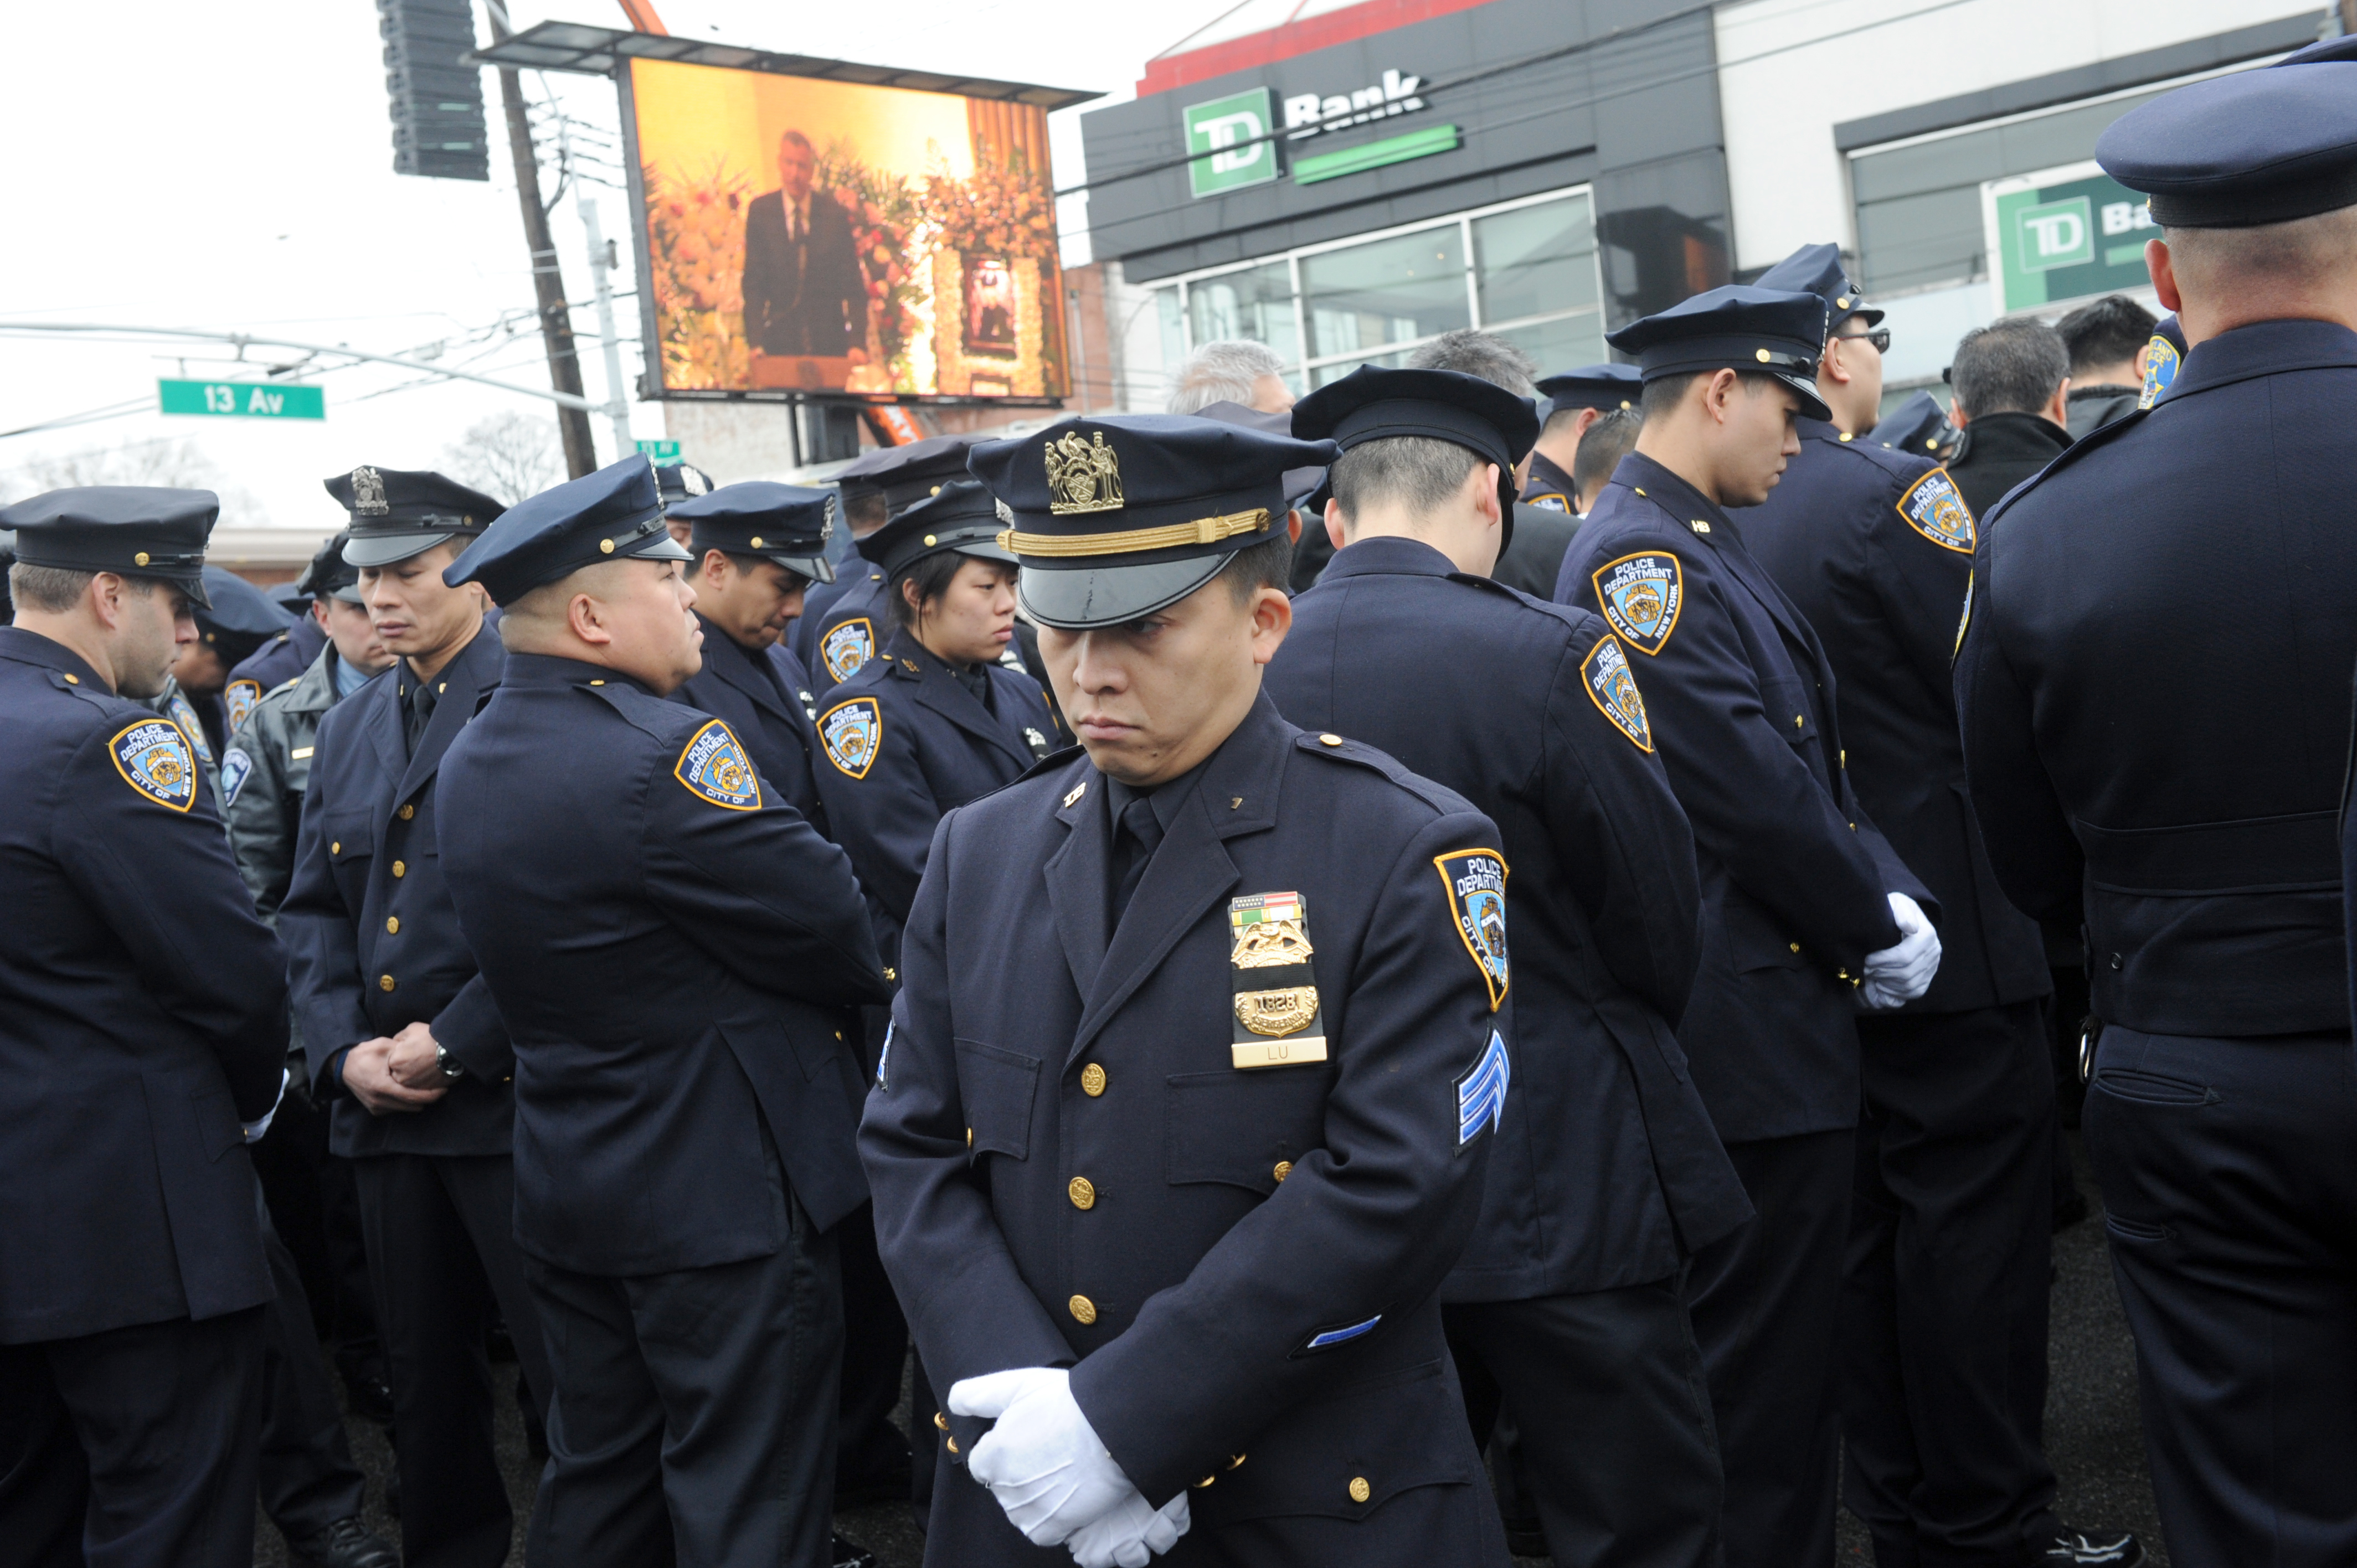 Police turn their backs to Mayor Bill de Blasio (on screen in bkgd) as he speaks at funeral of NYPD cop Wenjian Liu,32, at Aievoli Funeral Home in Bensonhurst .